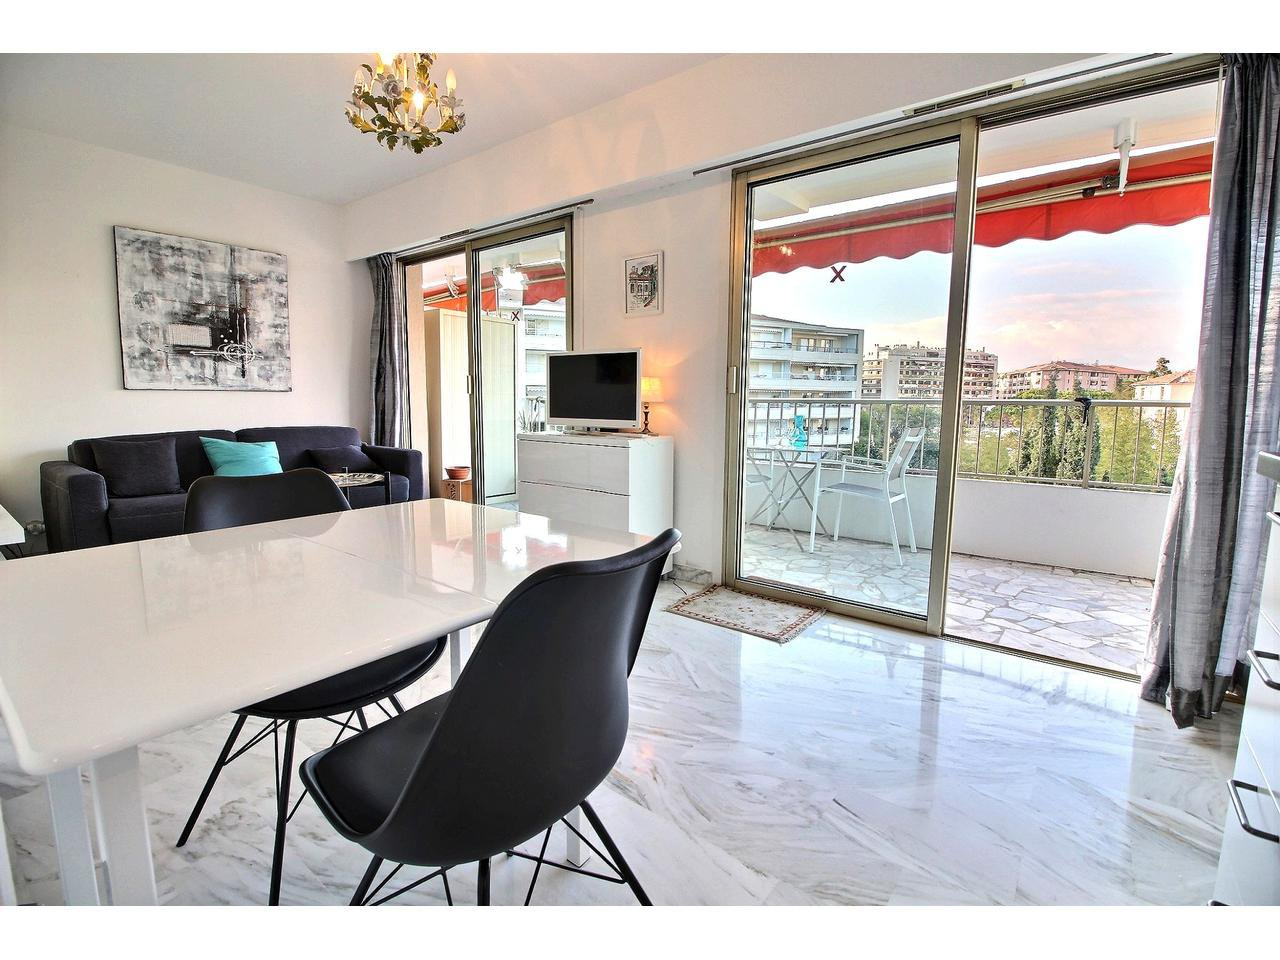 Beautiful studio flat for sale in Cannes Basse Californie